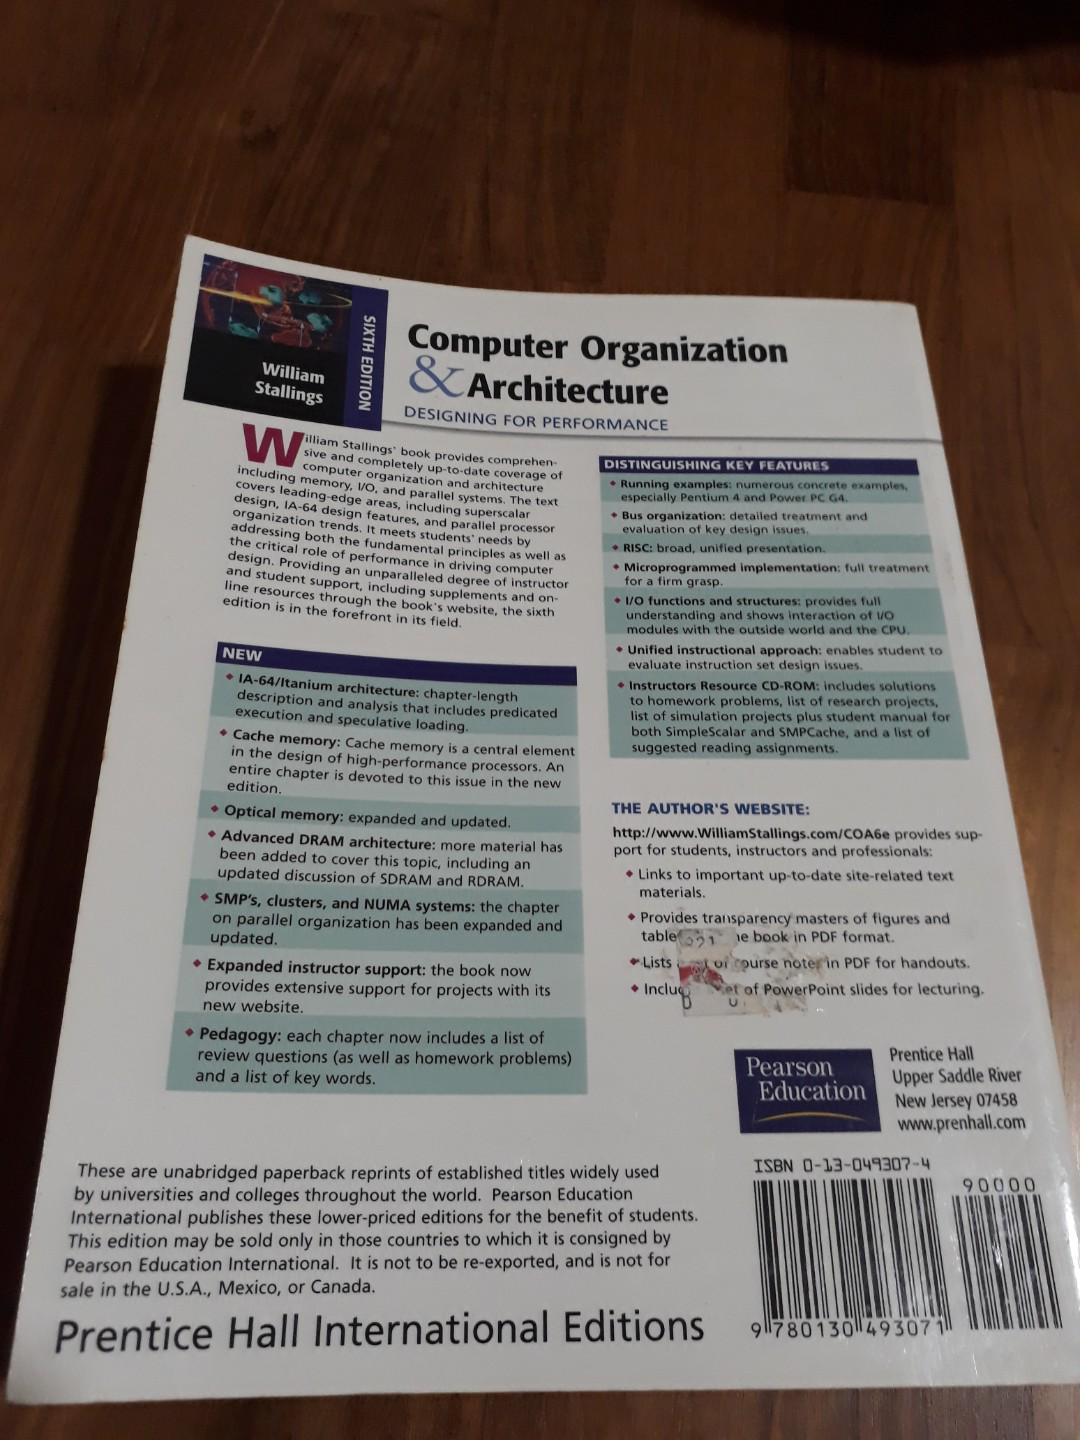 Computer Organization Architecture Designing For Performance Books Stationery Textbooks Professional Studies On Carousell